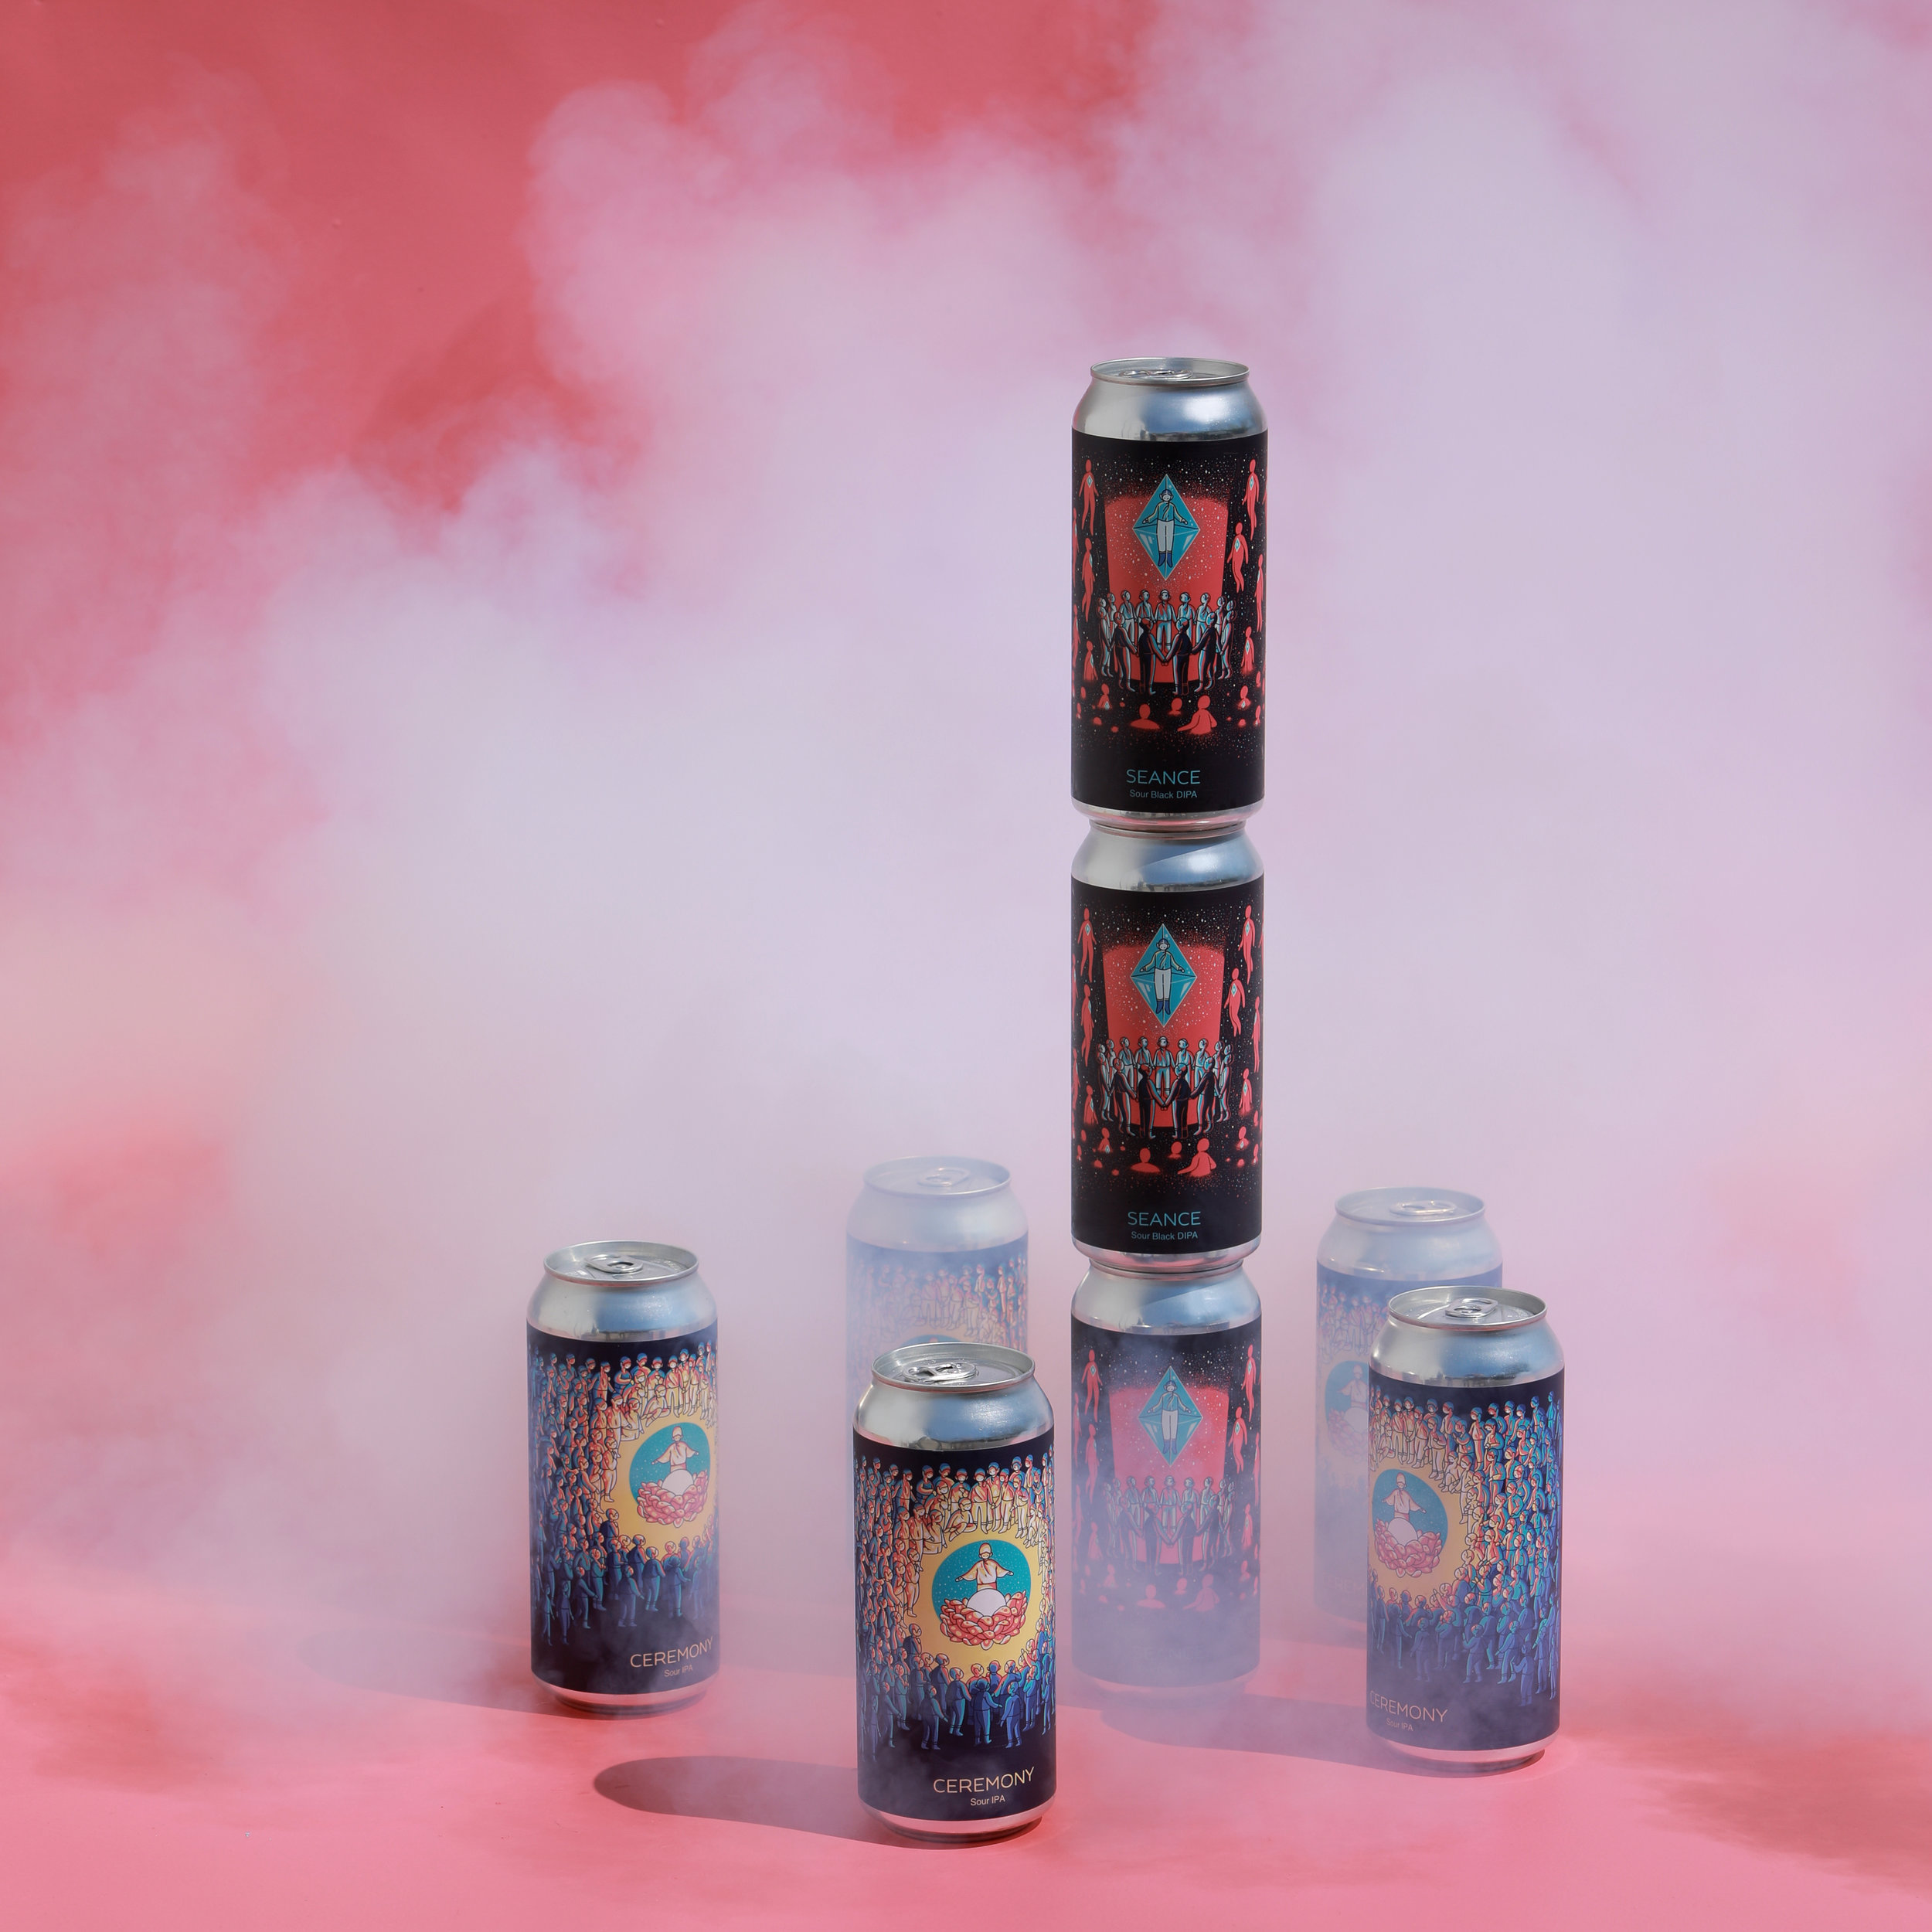 Photo of Ceremony and Seance cans